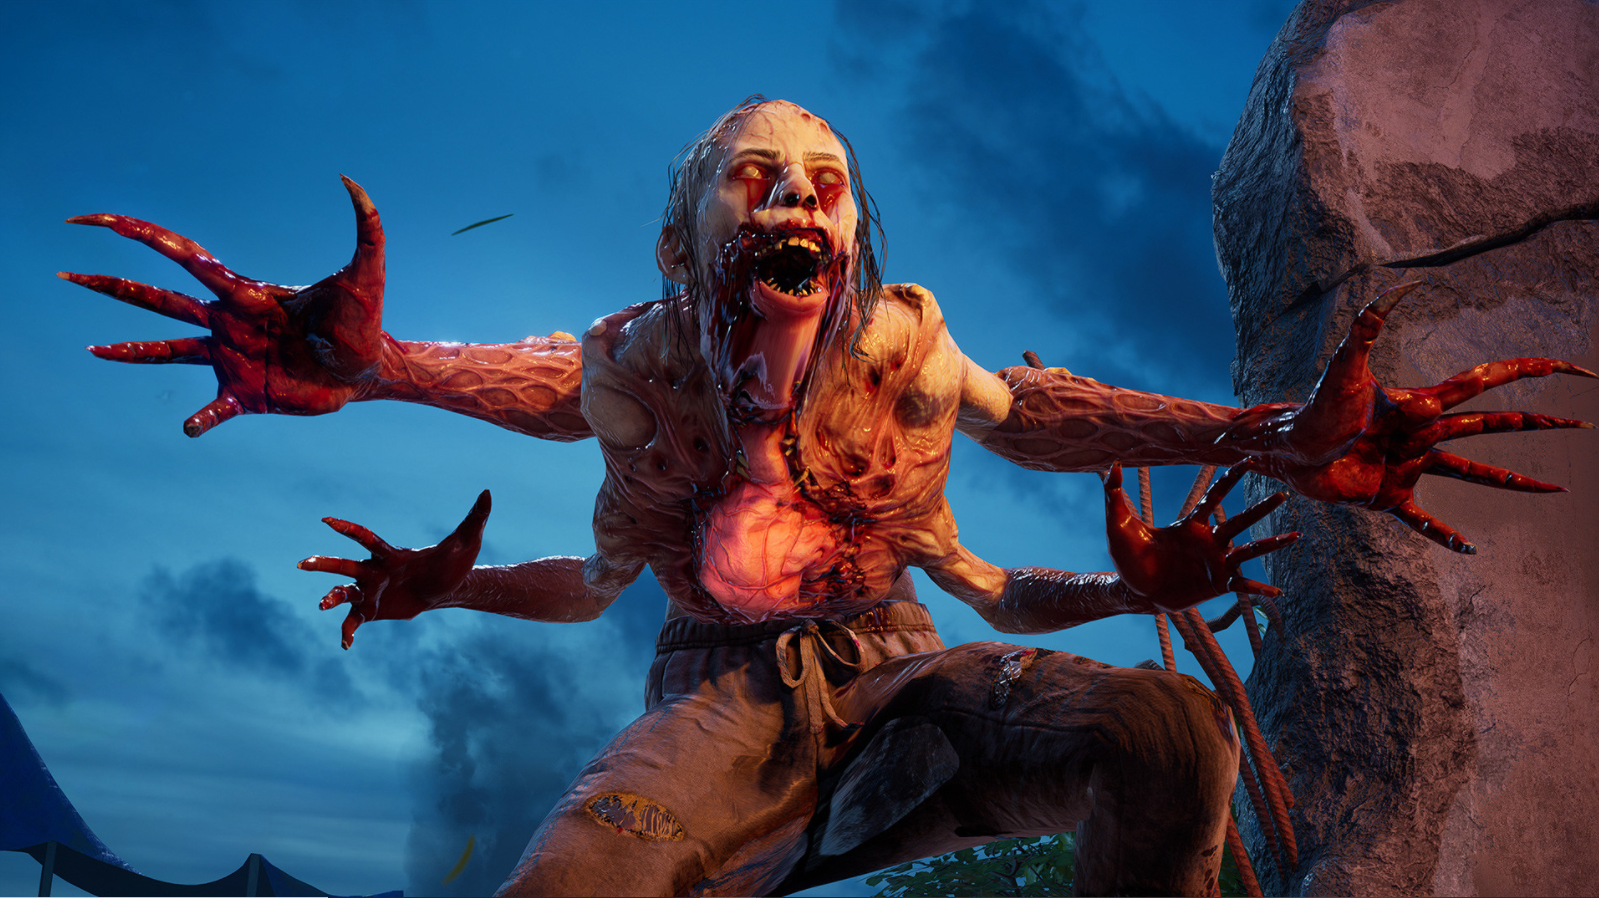 back-4-blood-hands-on-preview-ps5-ps4-left-4-dead-done-right-by-the-developers-who-made-the-franchise-succeed-5